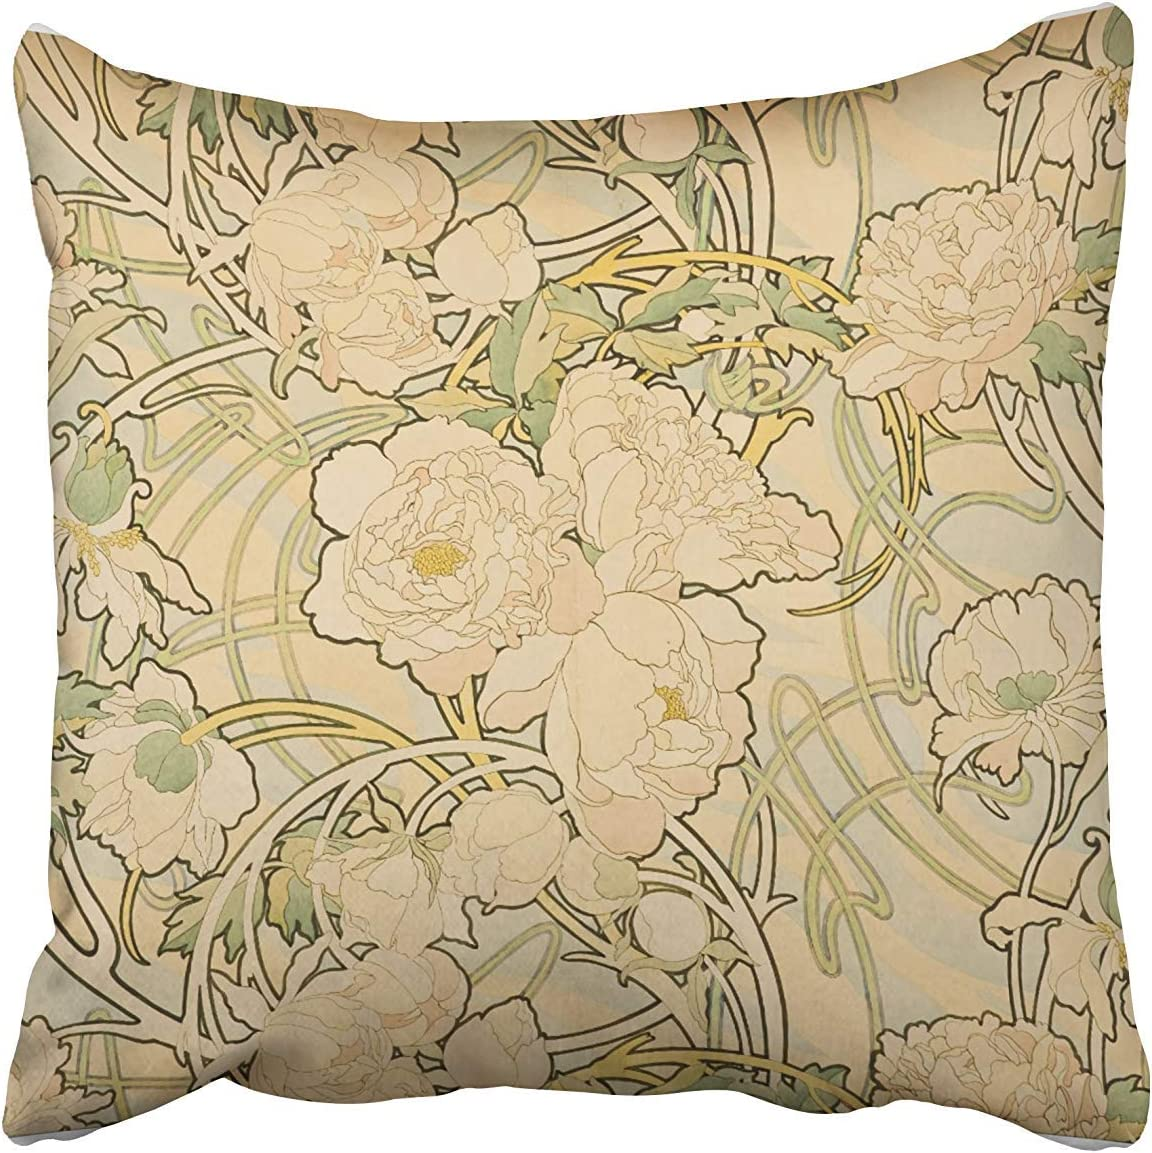 SPXUBZ Vintage Art Nouveau Peonies by Alphonse Mucha Cotton Throw Pillow Cover Home Decor Nice Gift Indoor Pillowcase Standar Size (Two Sides)